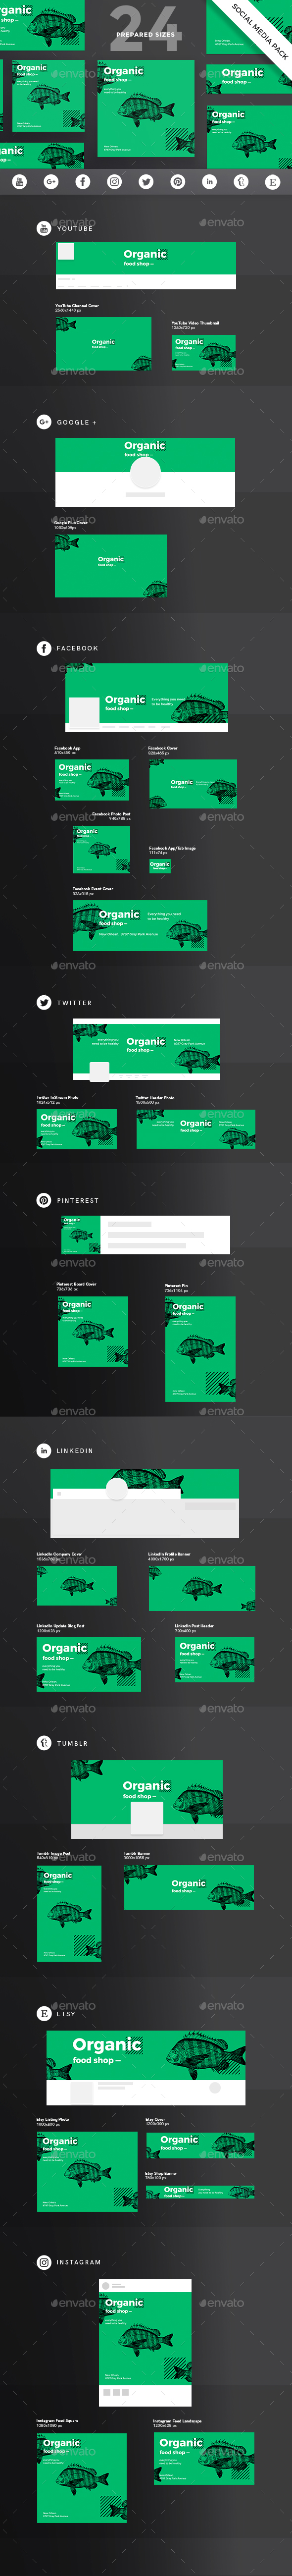 GraphicRiver Organic Food Social Media Pack 21184475